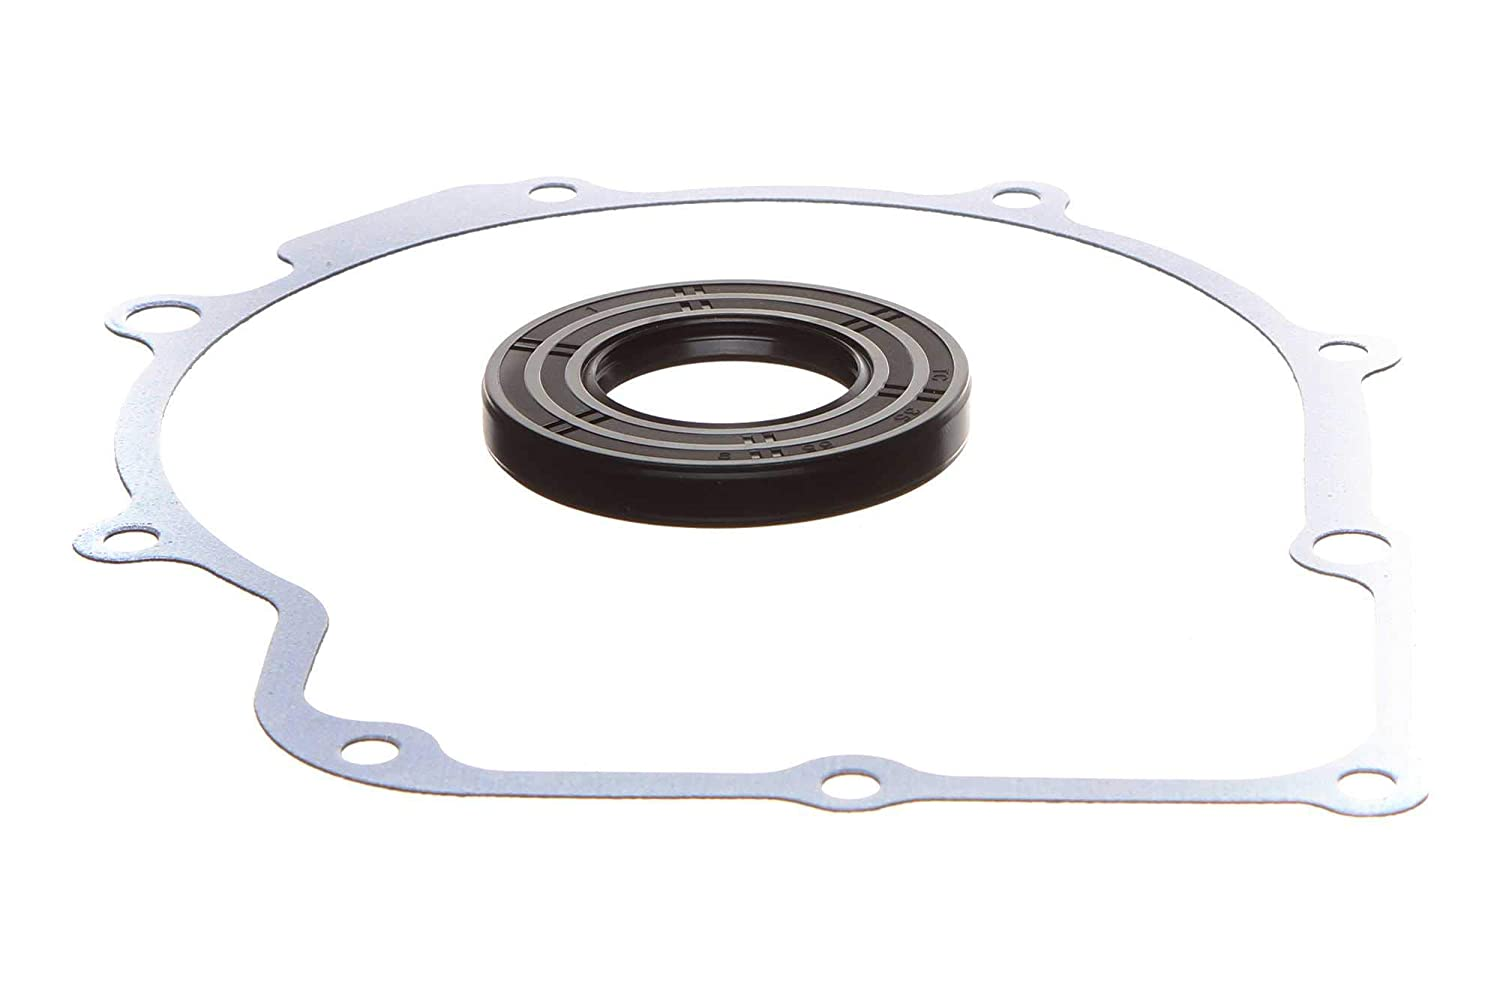 Replacement Kits Yamaha Clutch/Crankcase Outer Cover Gasket & Seal Set for Rhino 660 & Grizzly